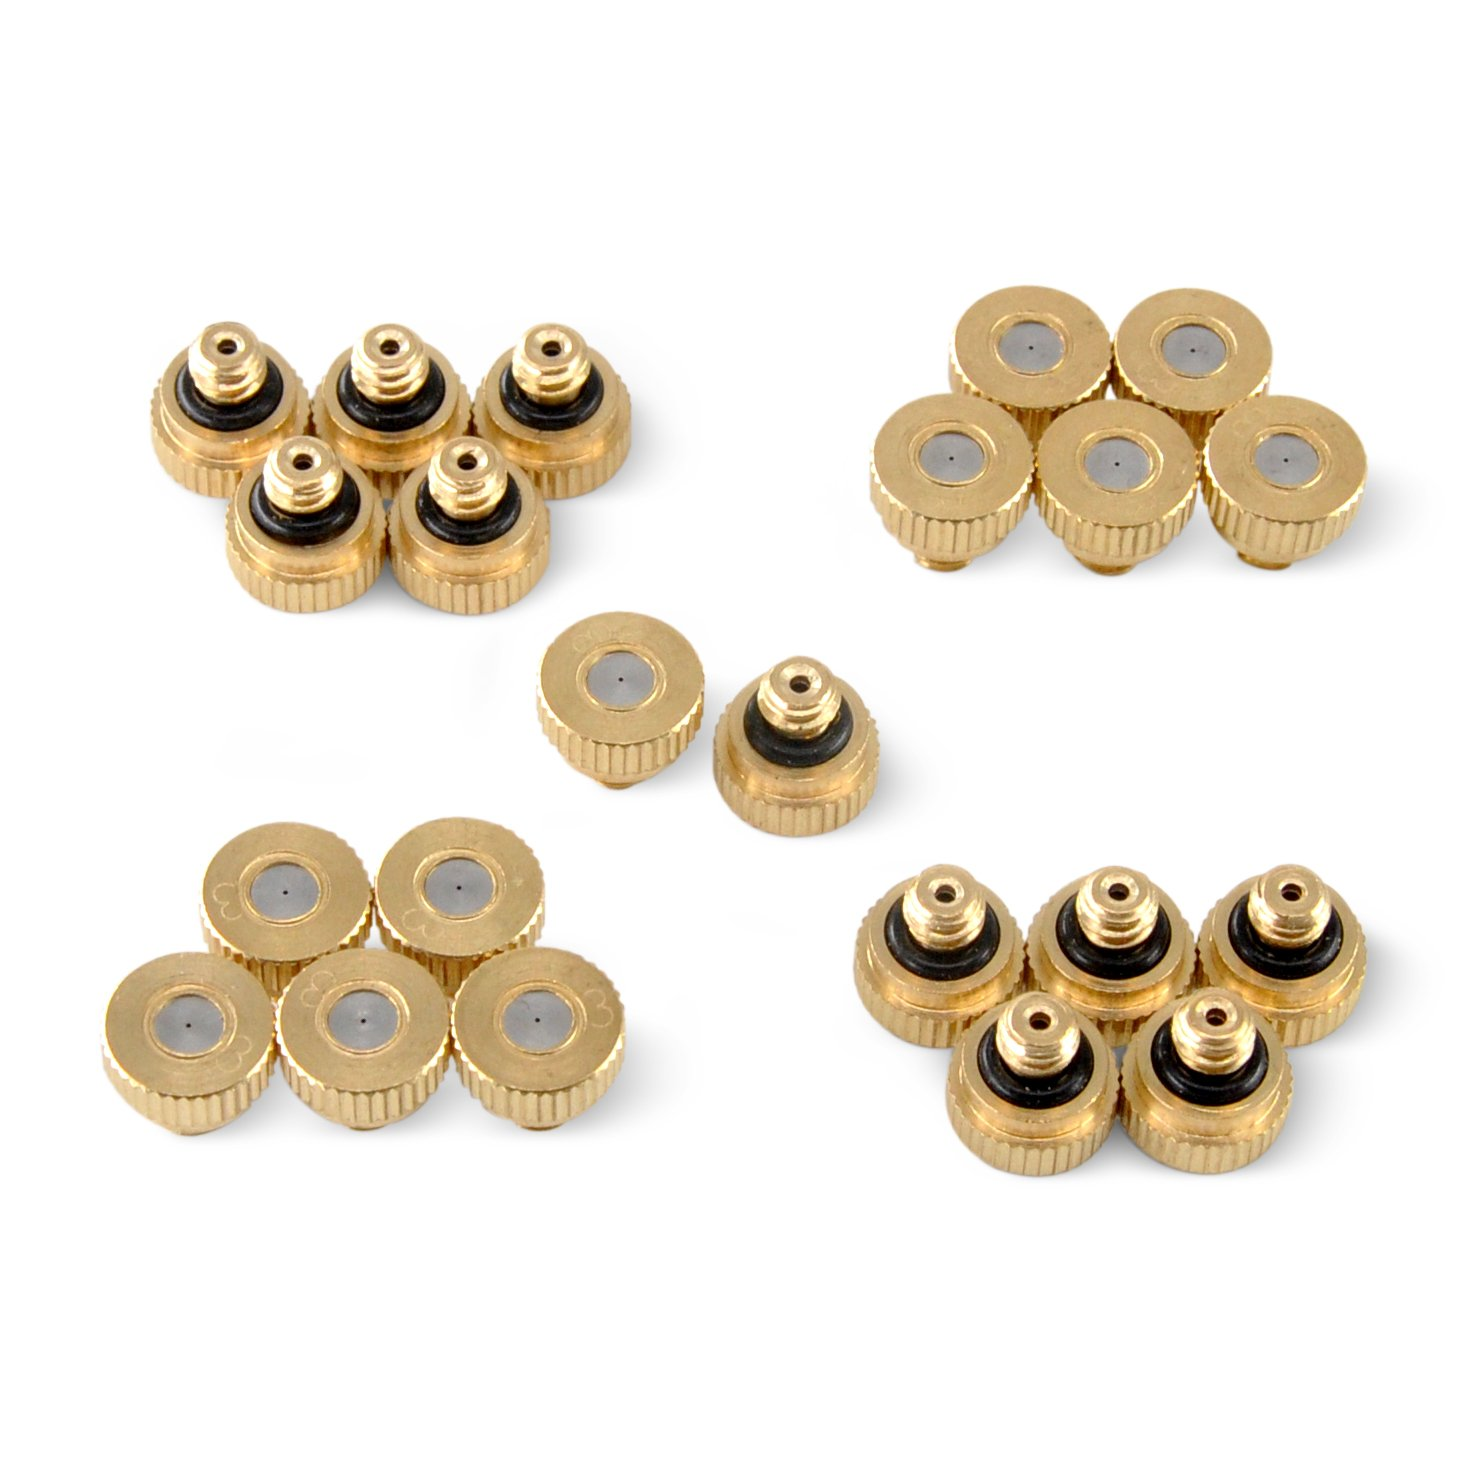 Aootech Brass Misting Nozzles for Outdoor Cooling System 22 pcs,0.012'' Orifice (0.3 mm) 10/24 UNC